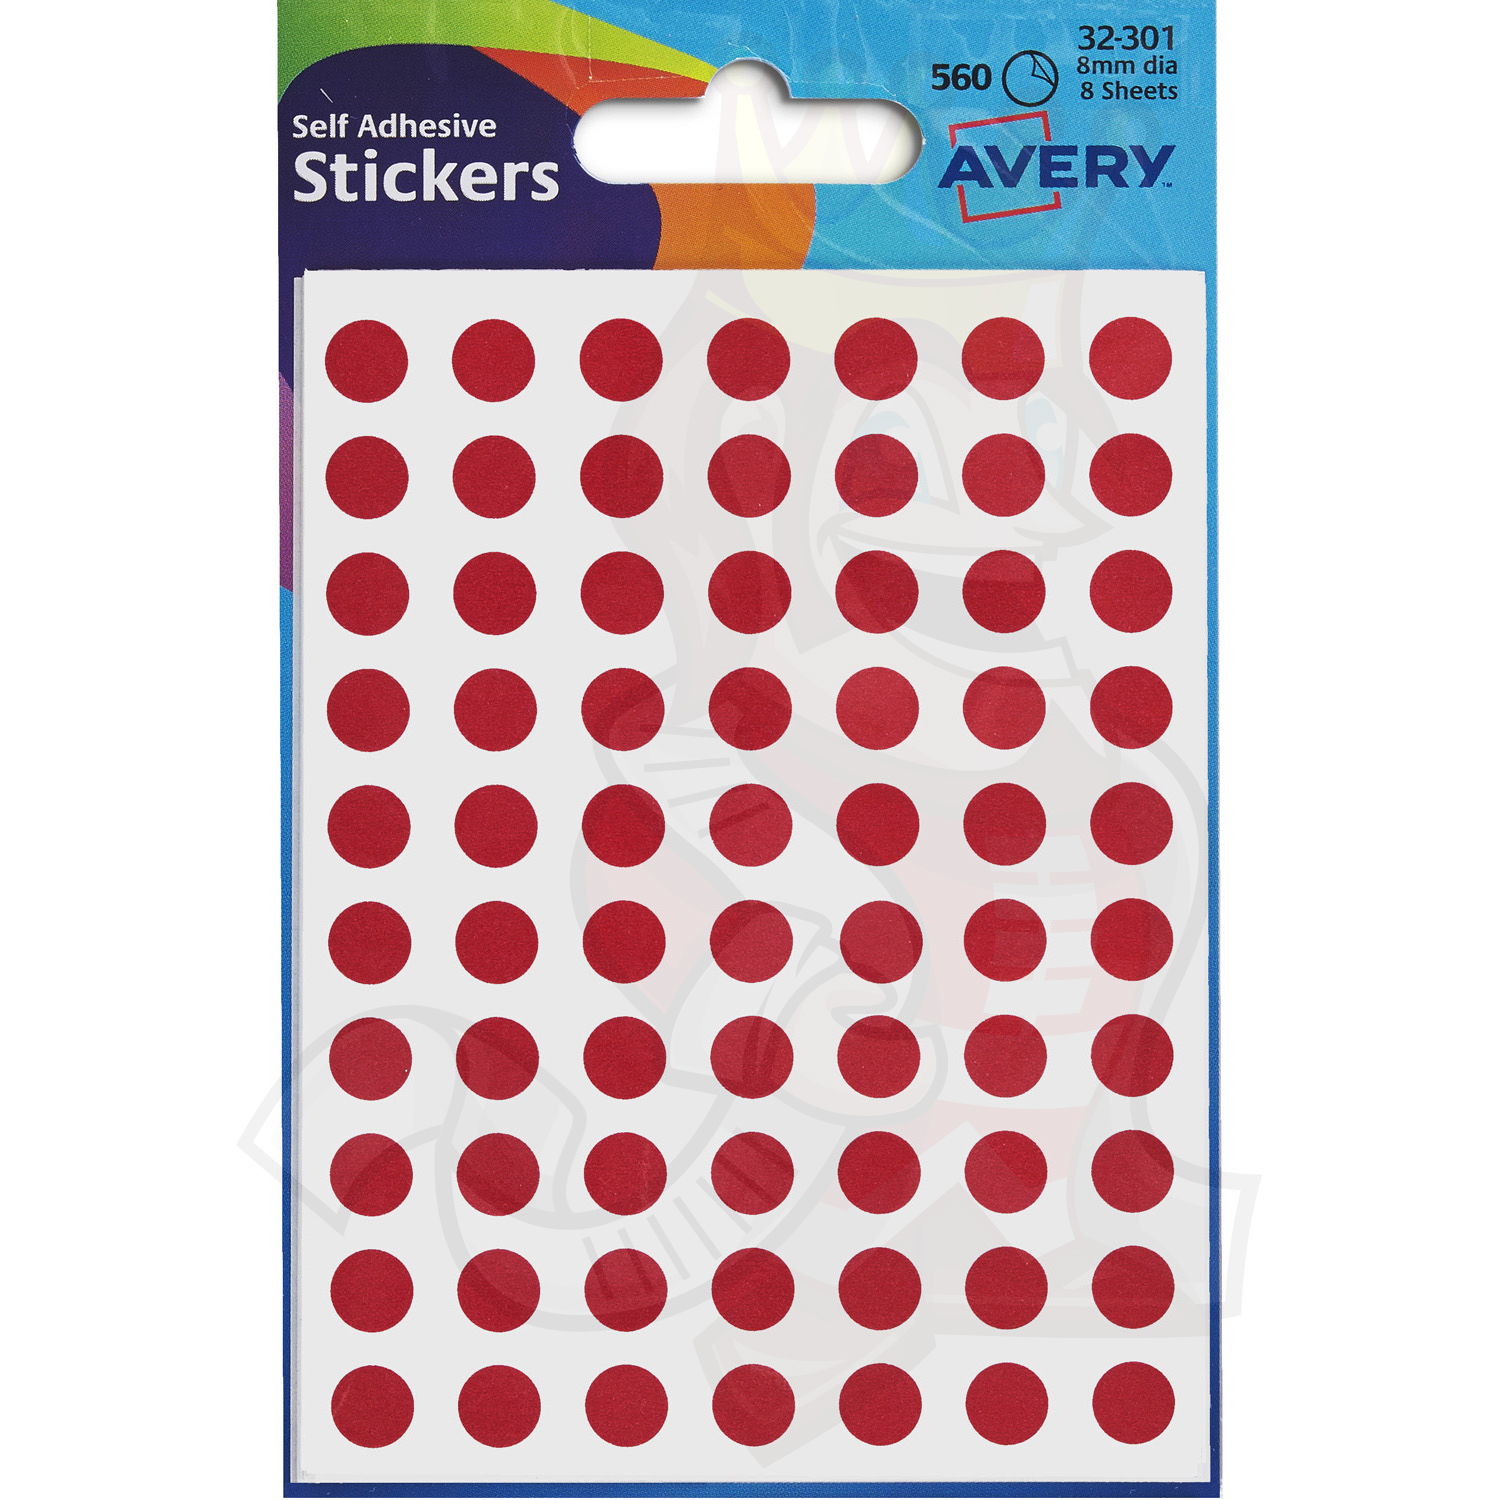 avery coloured labels round 8mm diameter red 32 301 10 packs of 560